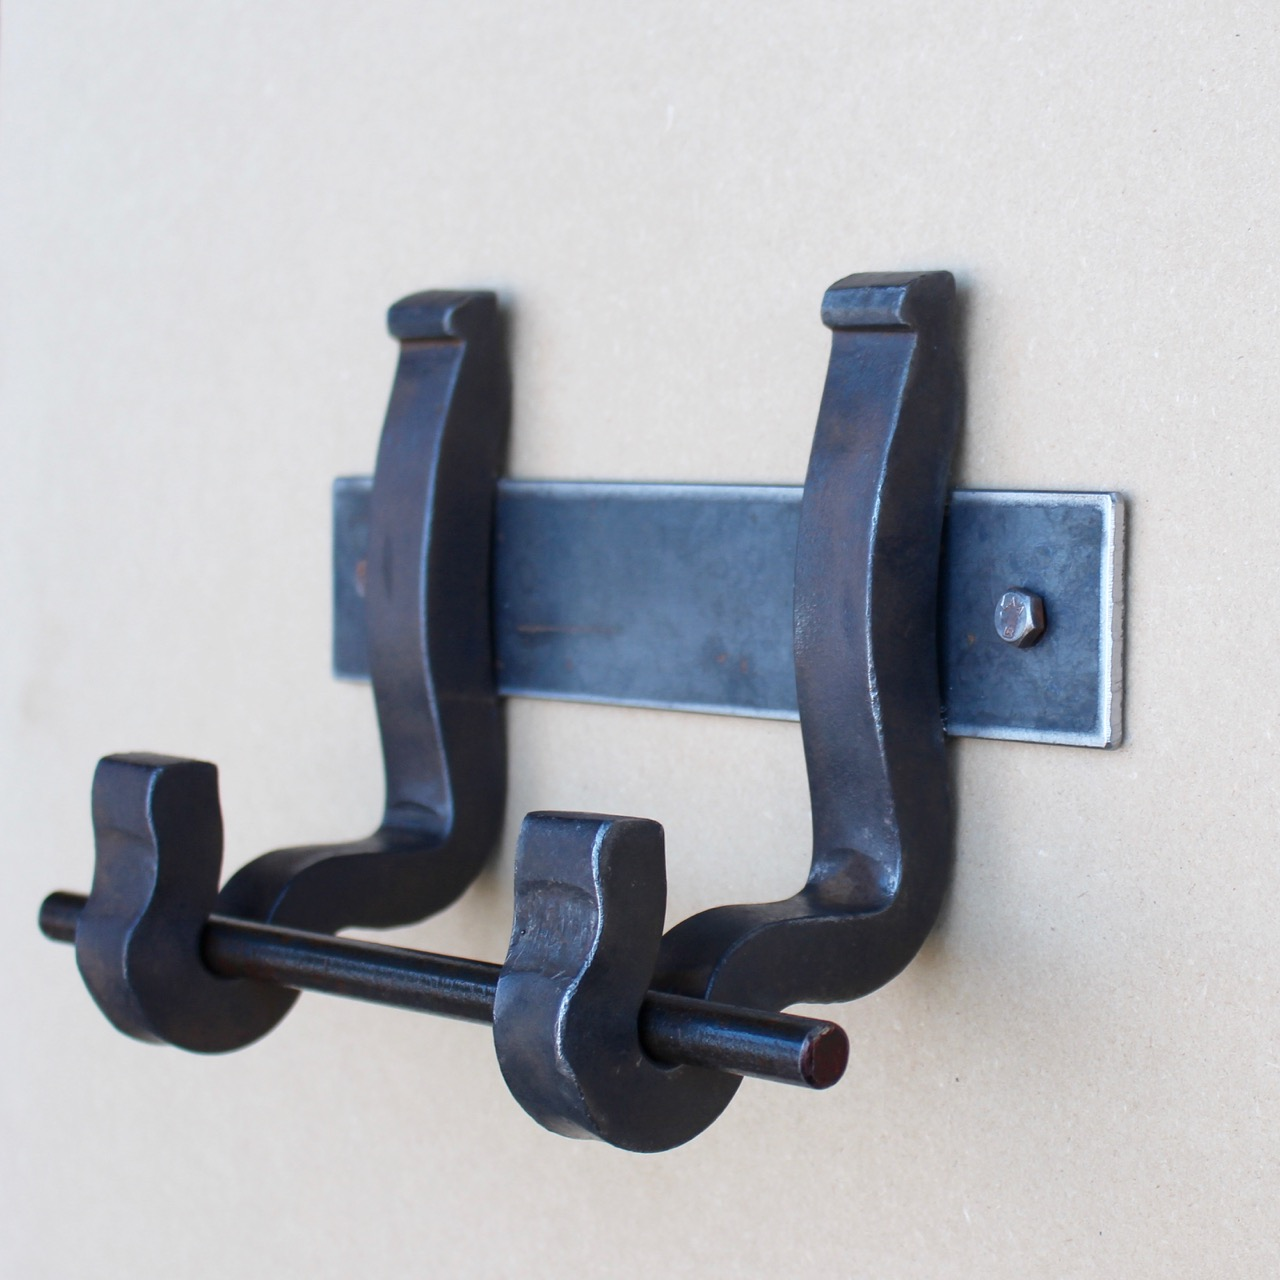 Rail Anchor Bracket Toilet paper dispenser